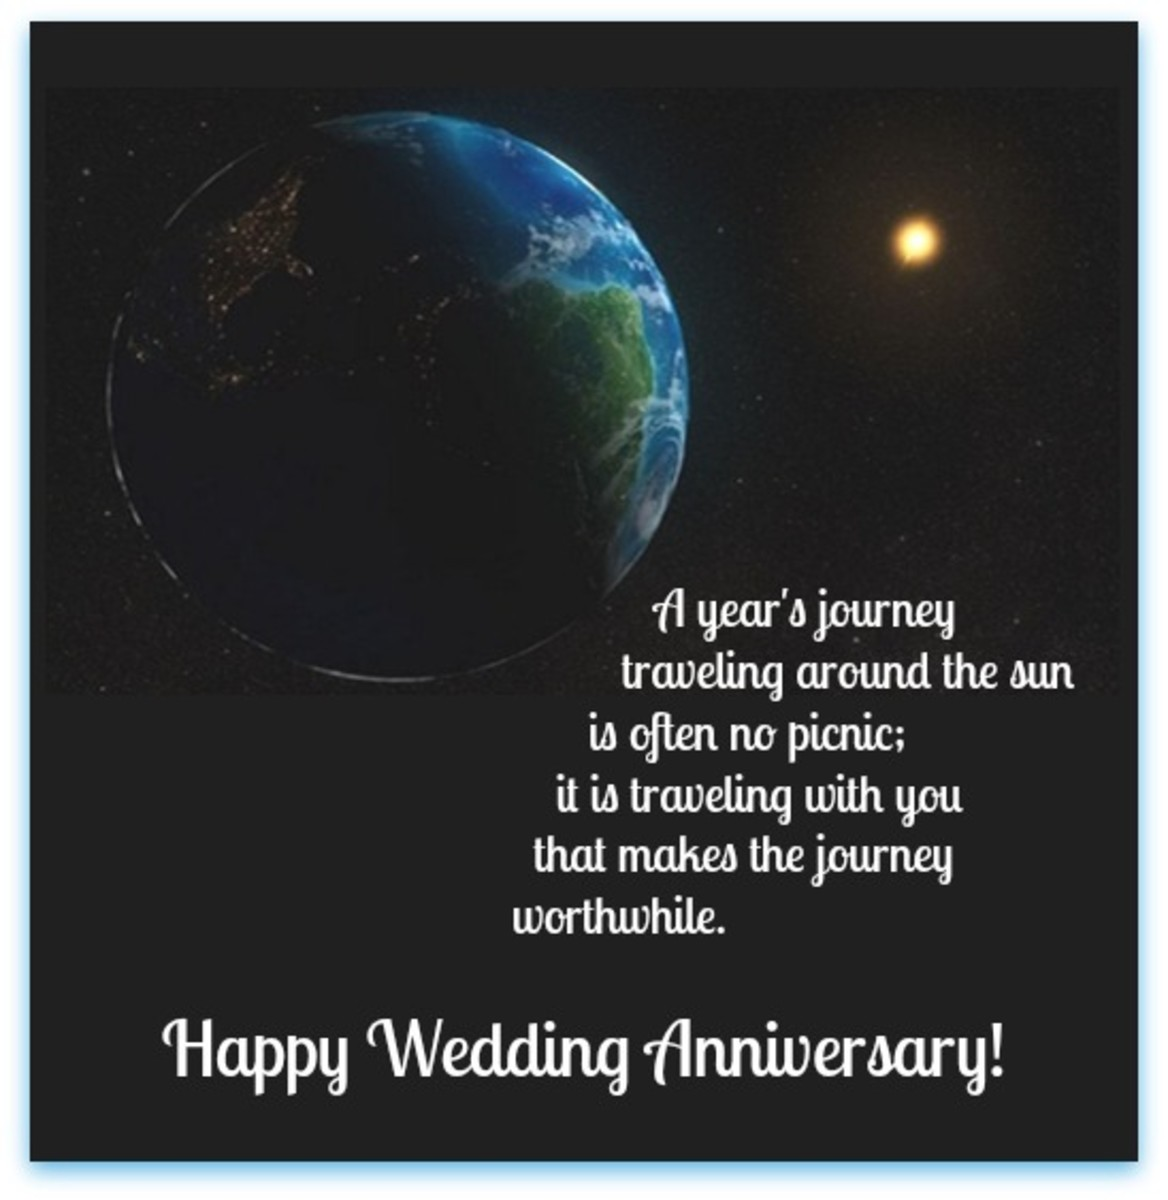 Anniversary Wishes for Spouse